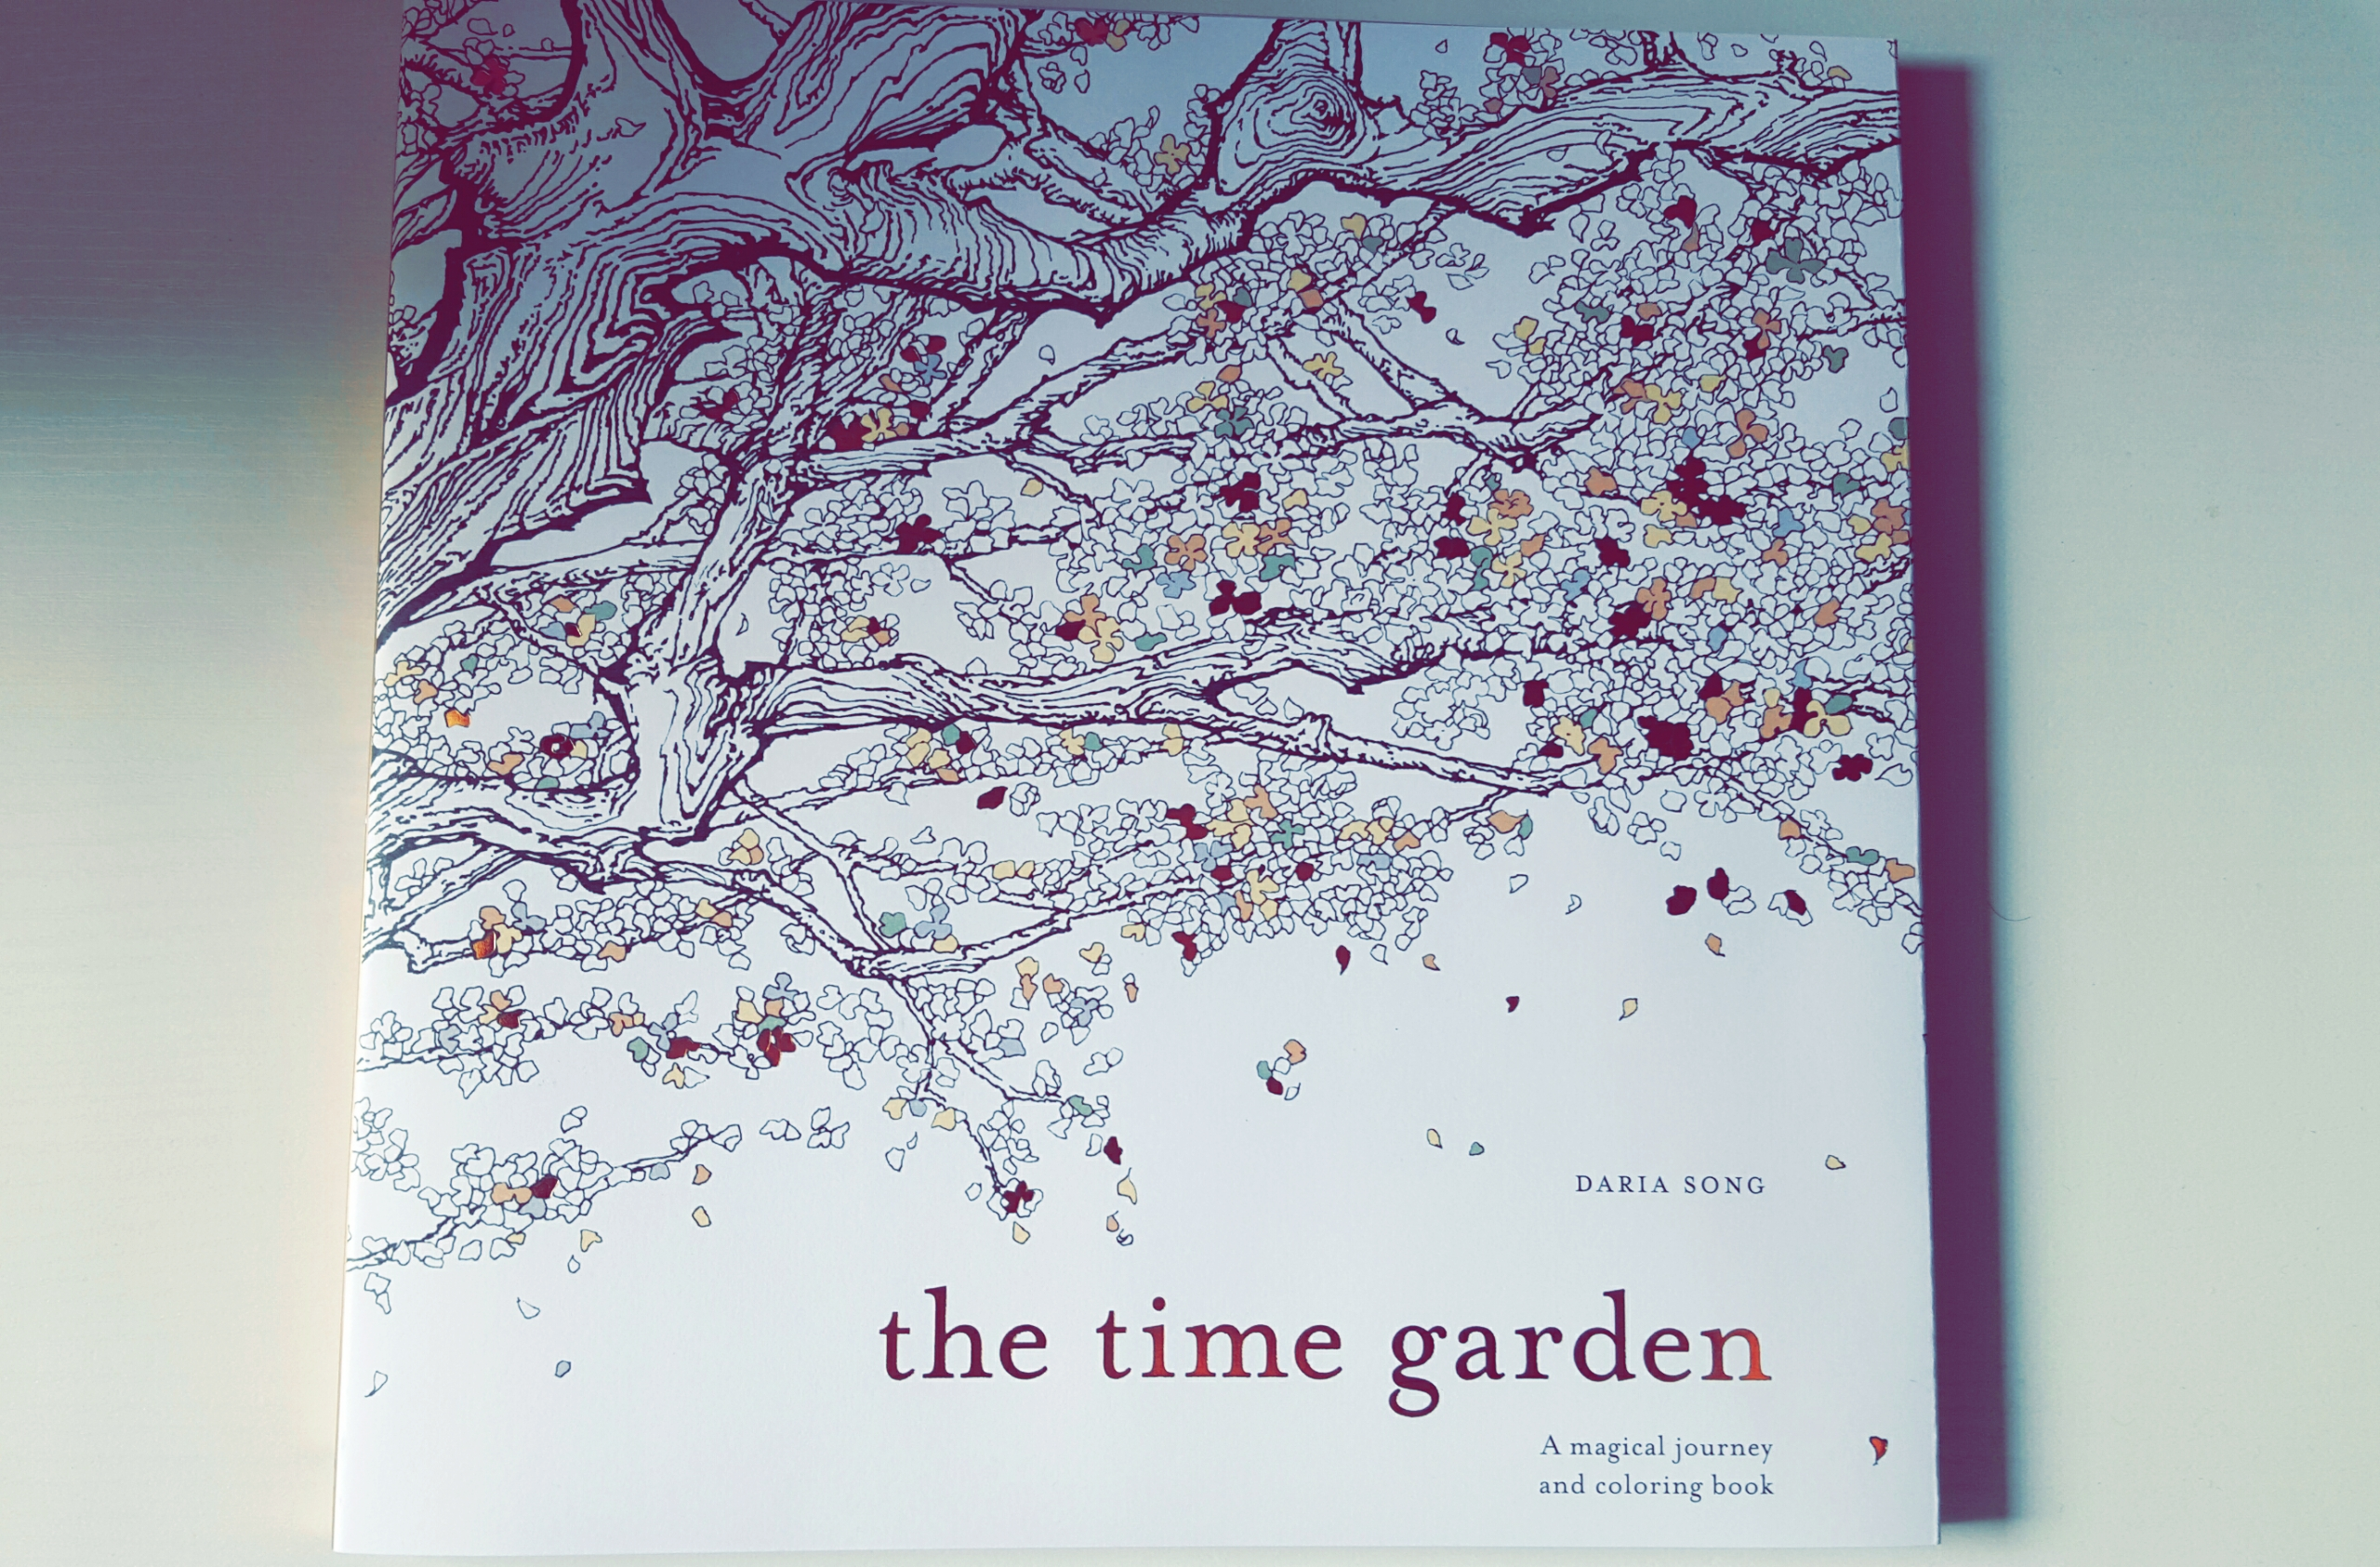 The Time Garden By Daria Song 15 09 21 16 04 07 486 Deco